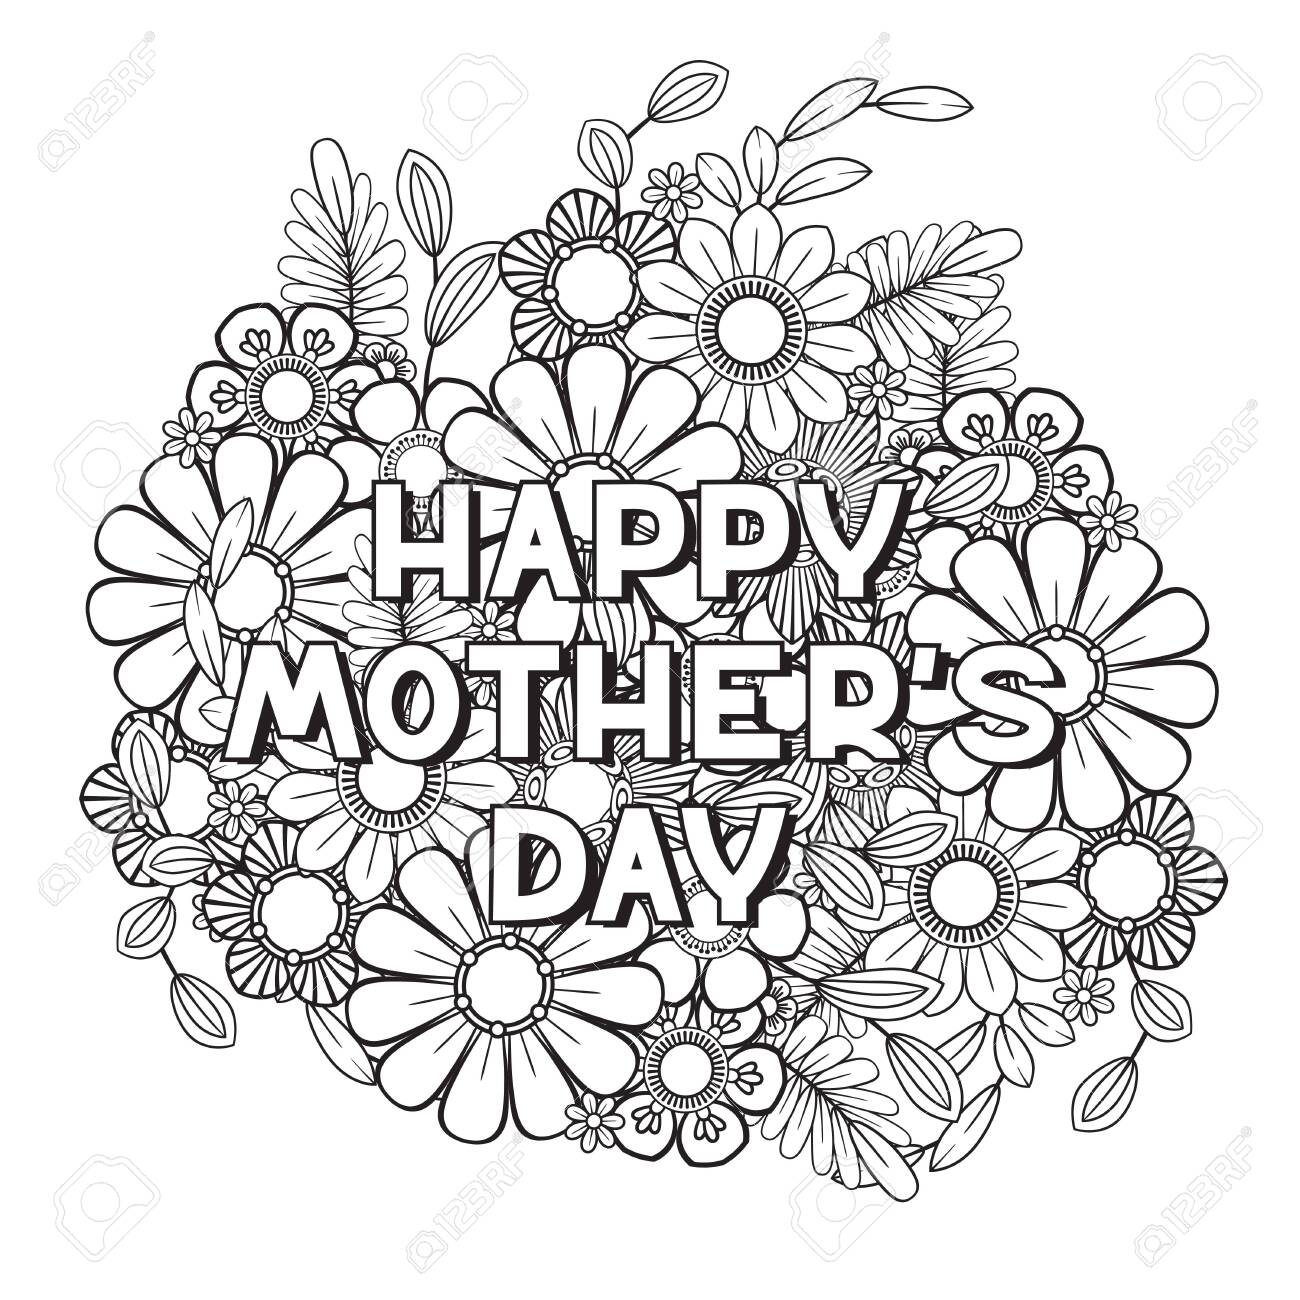 Happy Mother's Day Coloring Page For Adult Coloring Book. Black.. Royalty  Free Cliparts, Vectors, And Stock Illustration. Image 124274776.